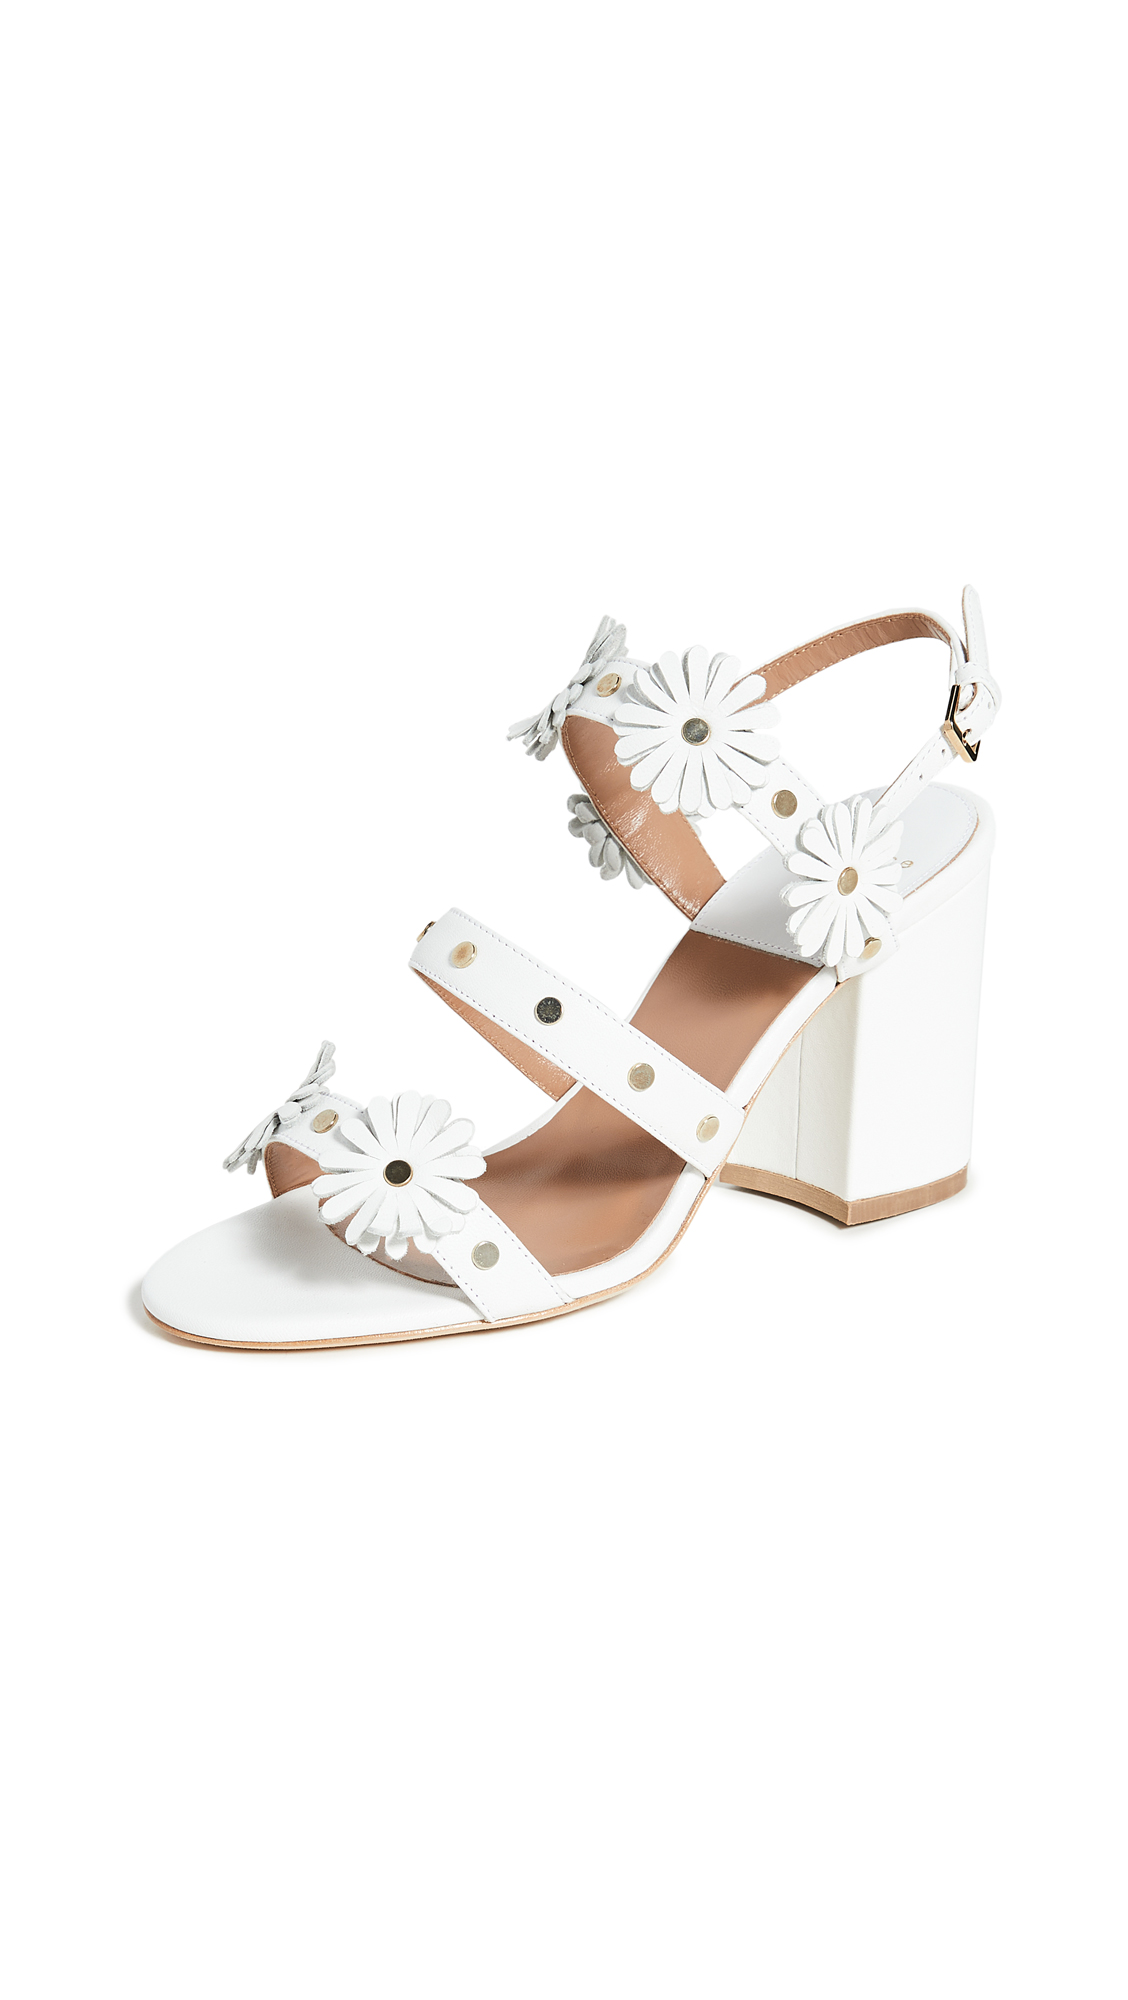 Laurence Dacade Valance Sandals - 60% Off Sale